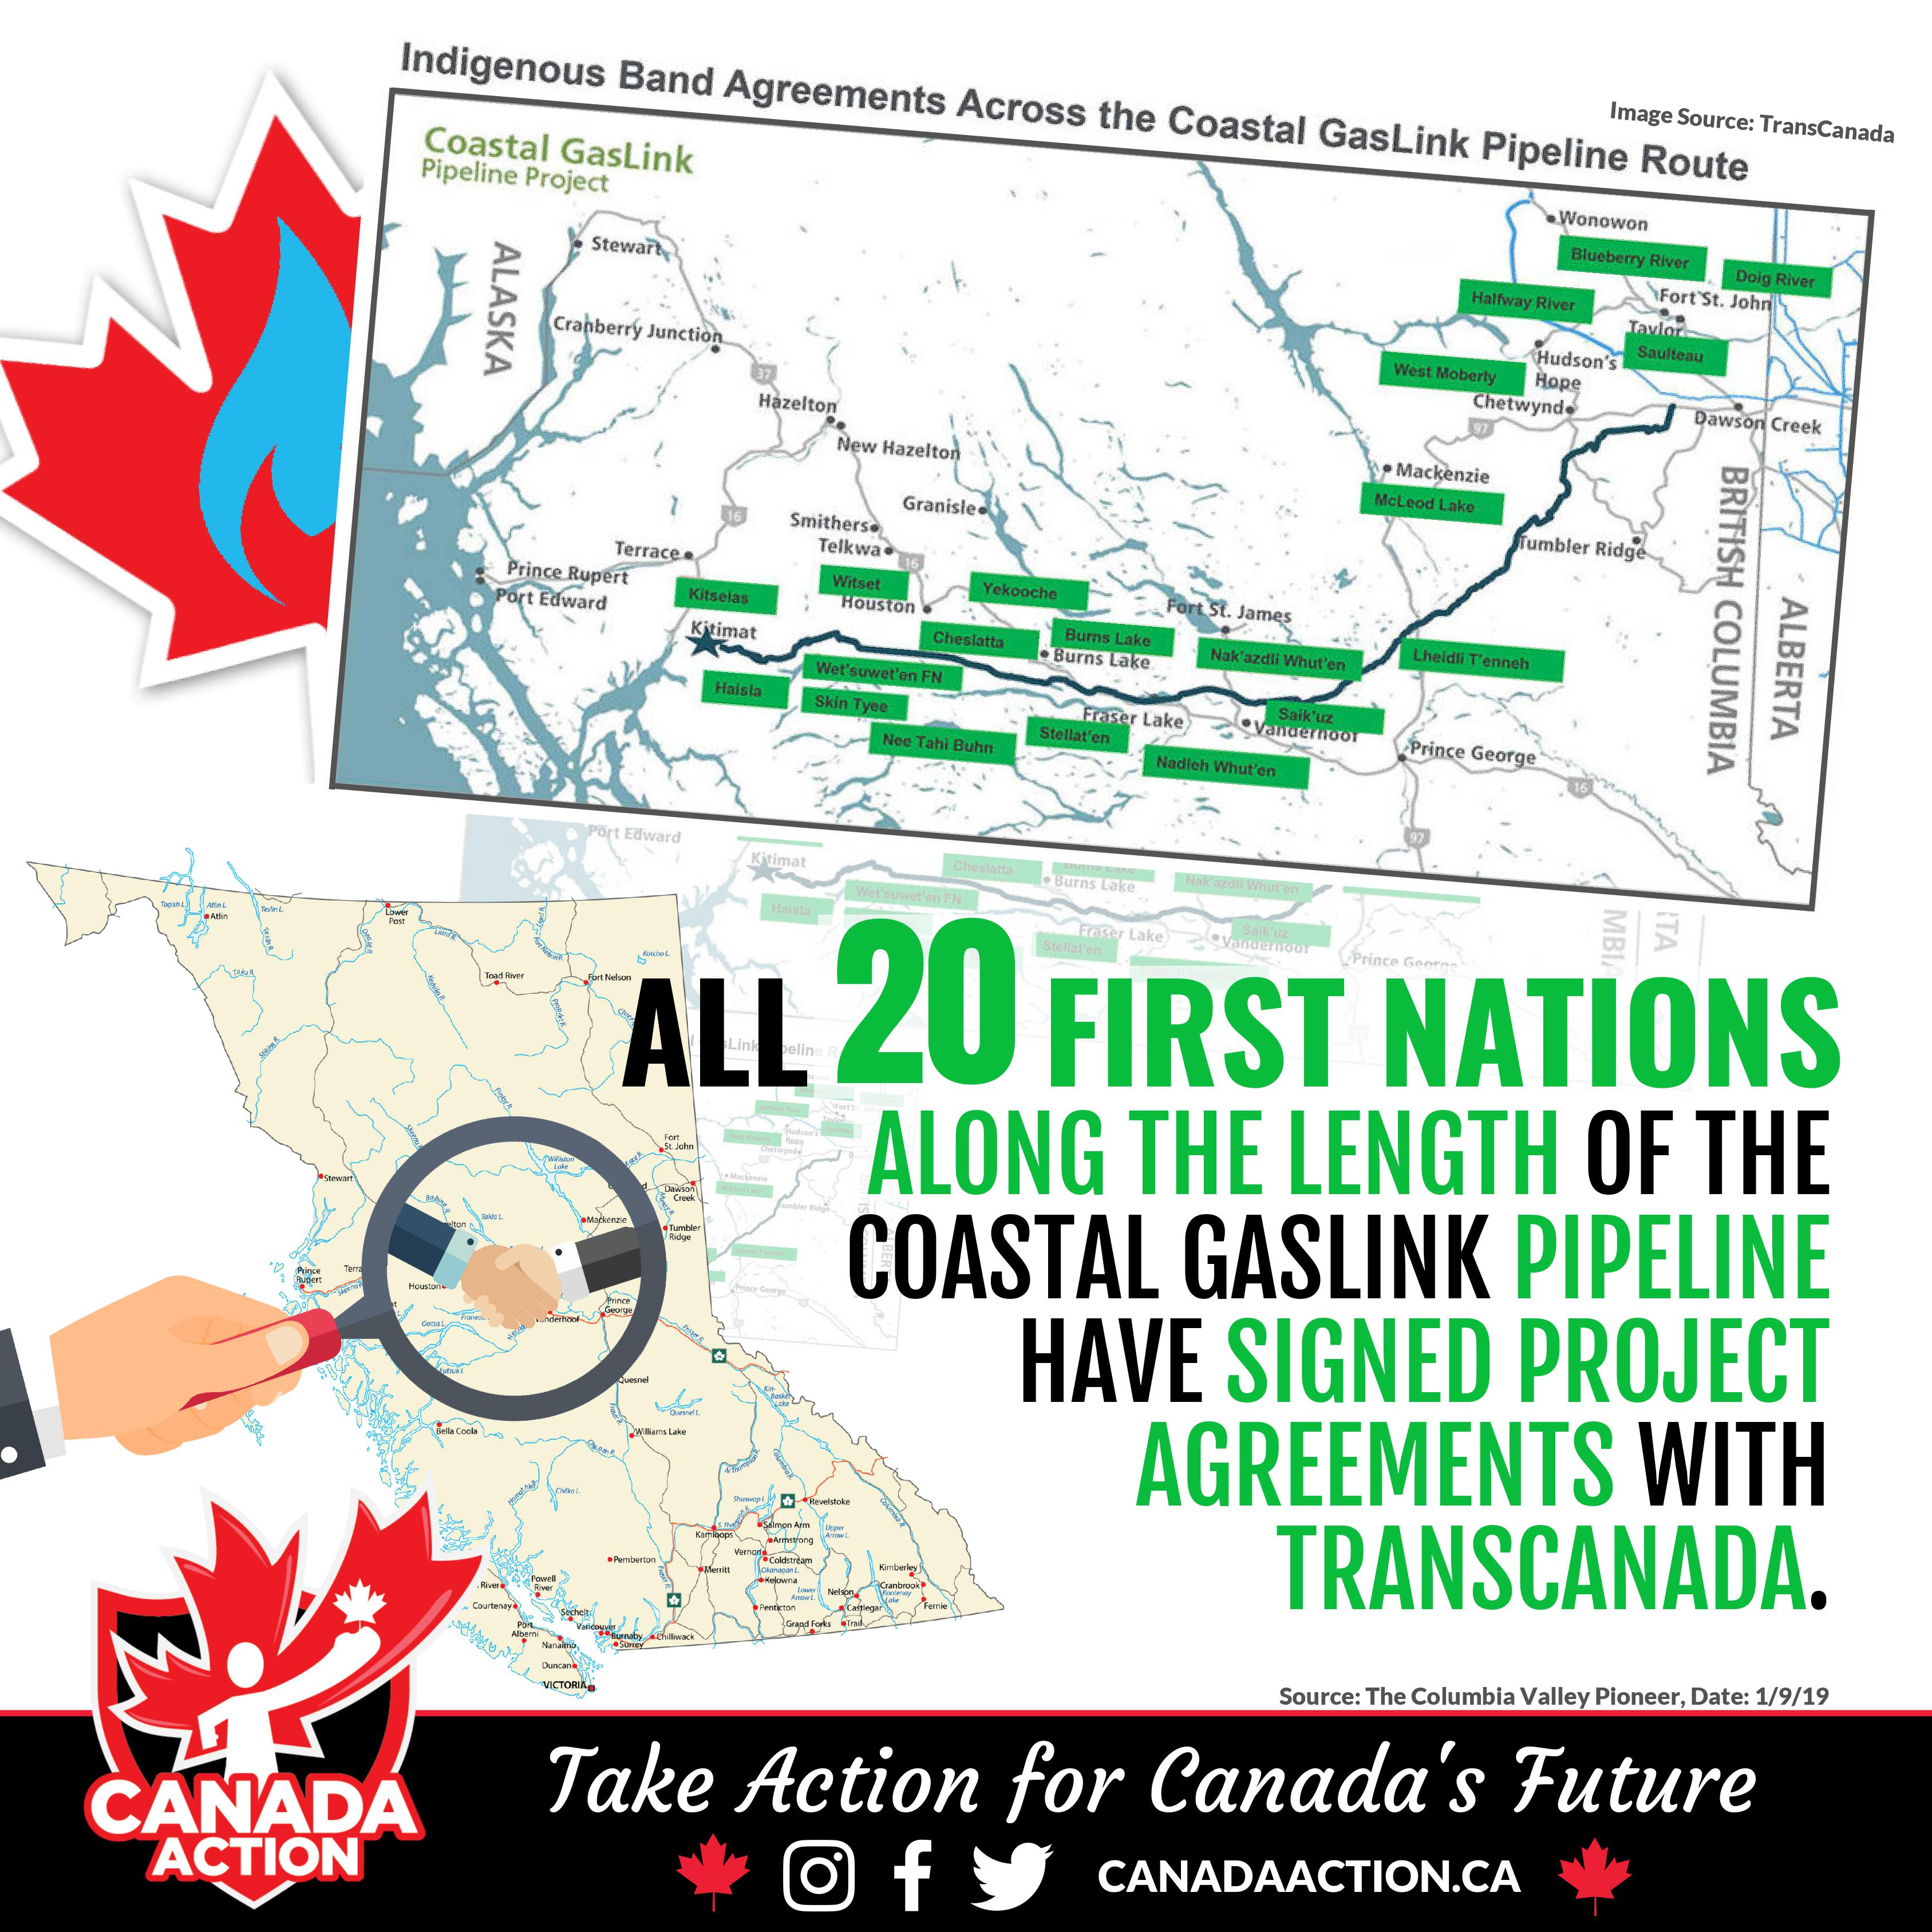 coastal gaslink pipeline project support first nations